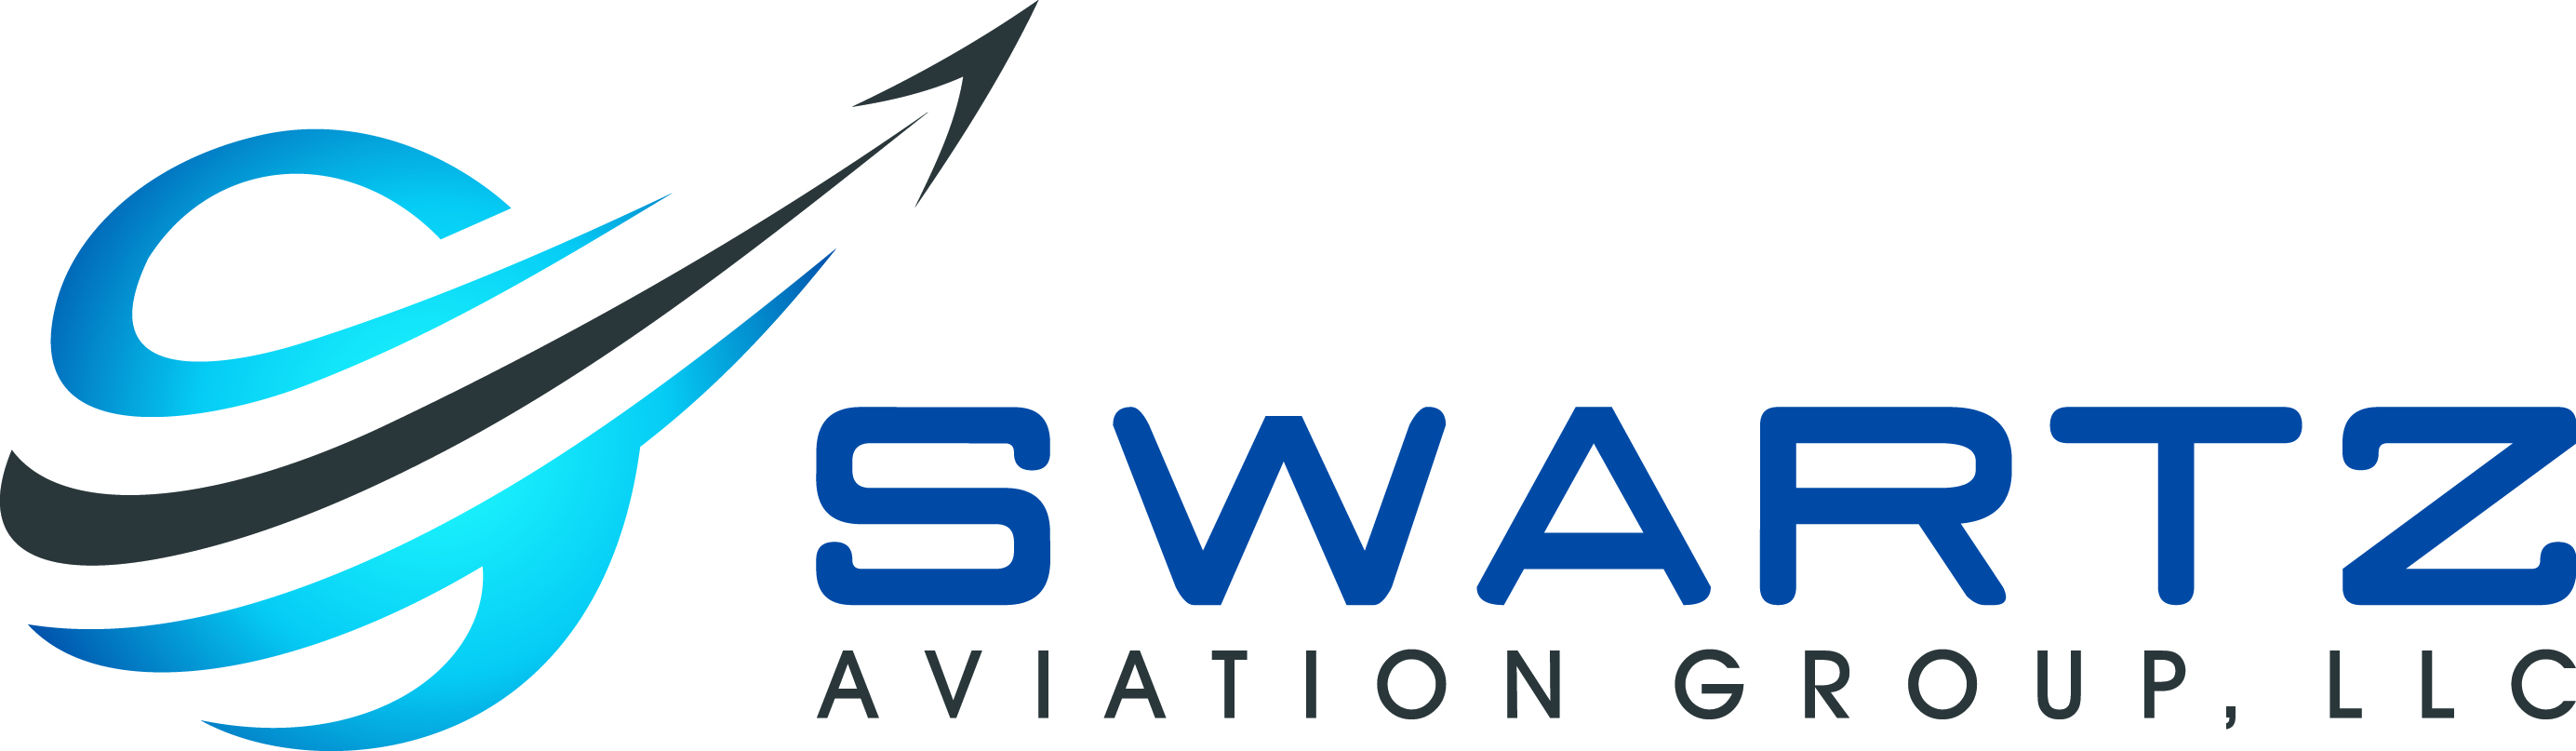 Swartz Aviation Group, LLC. logo